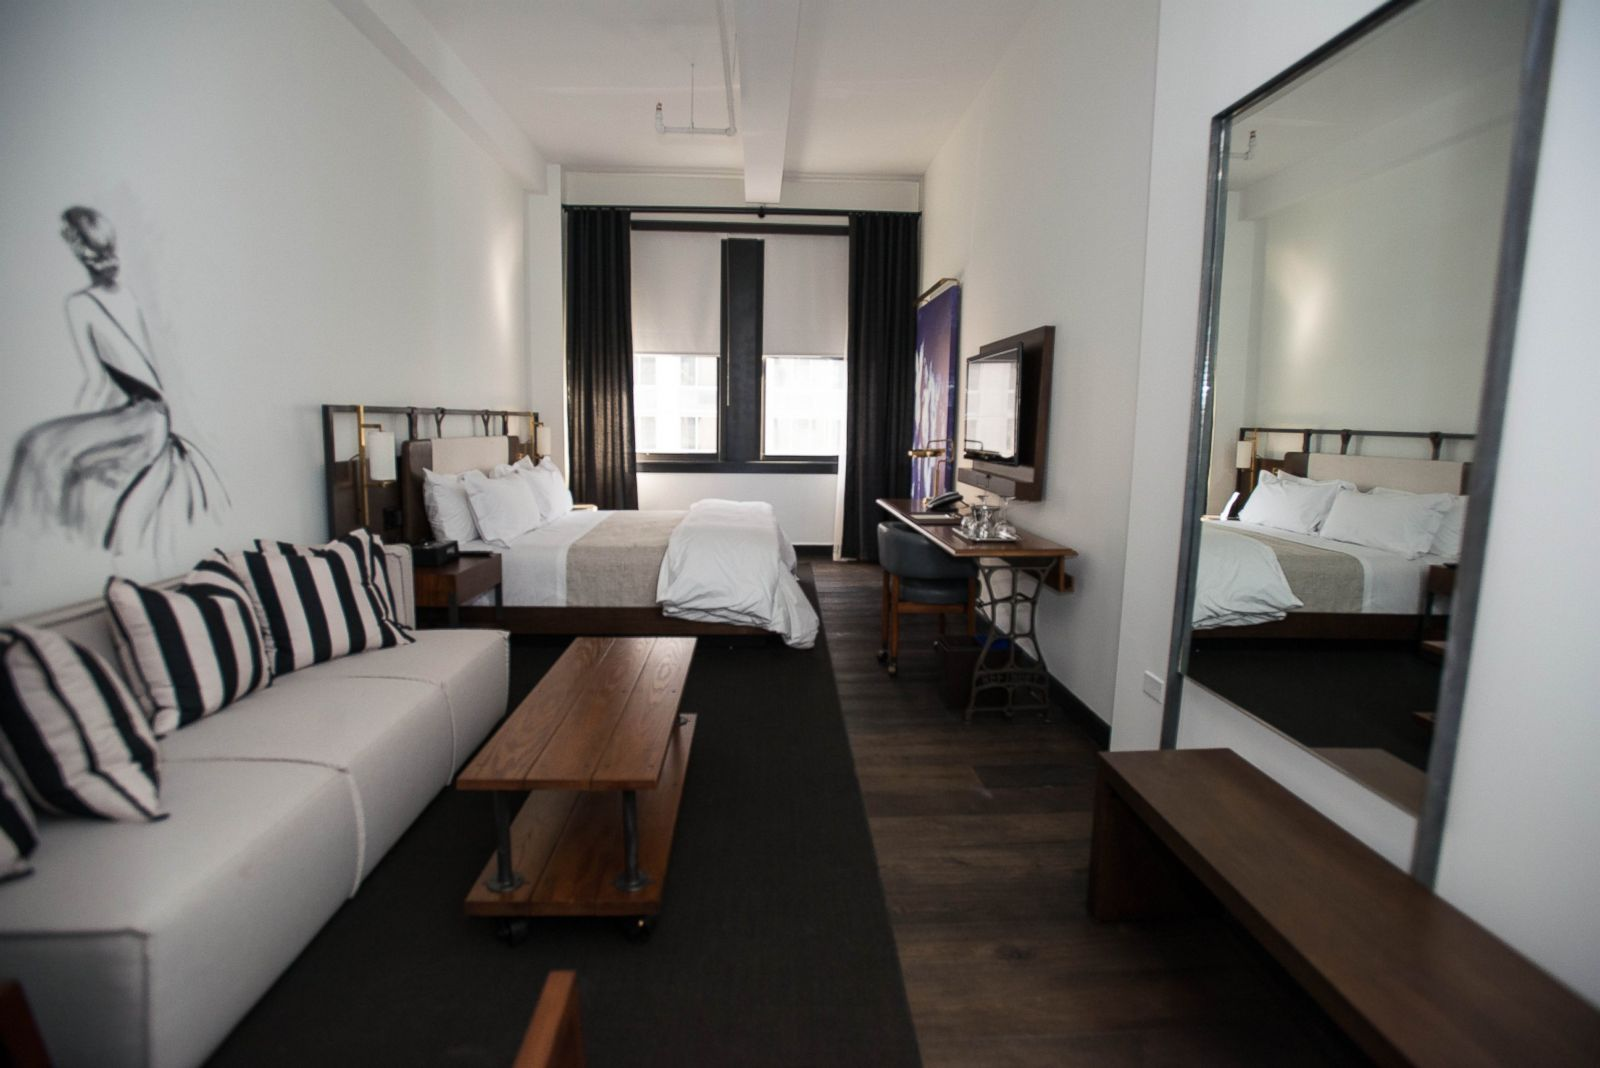 The refinery hotel new york city picture 10 of the best for Top boutique hotels new york